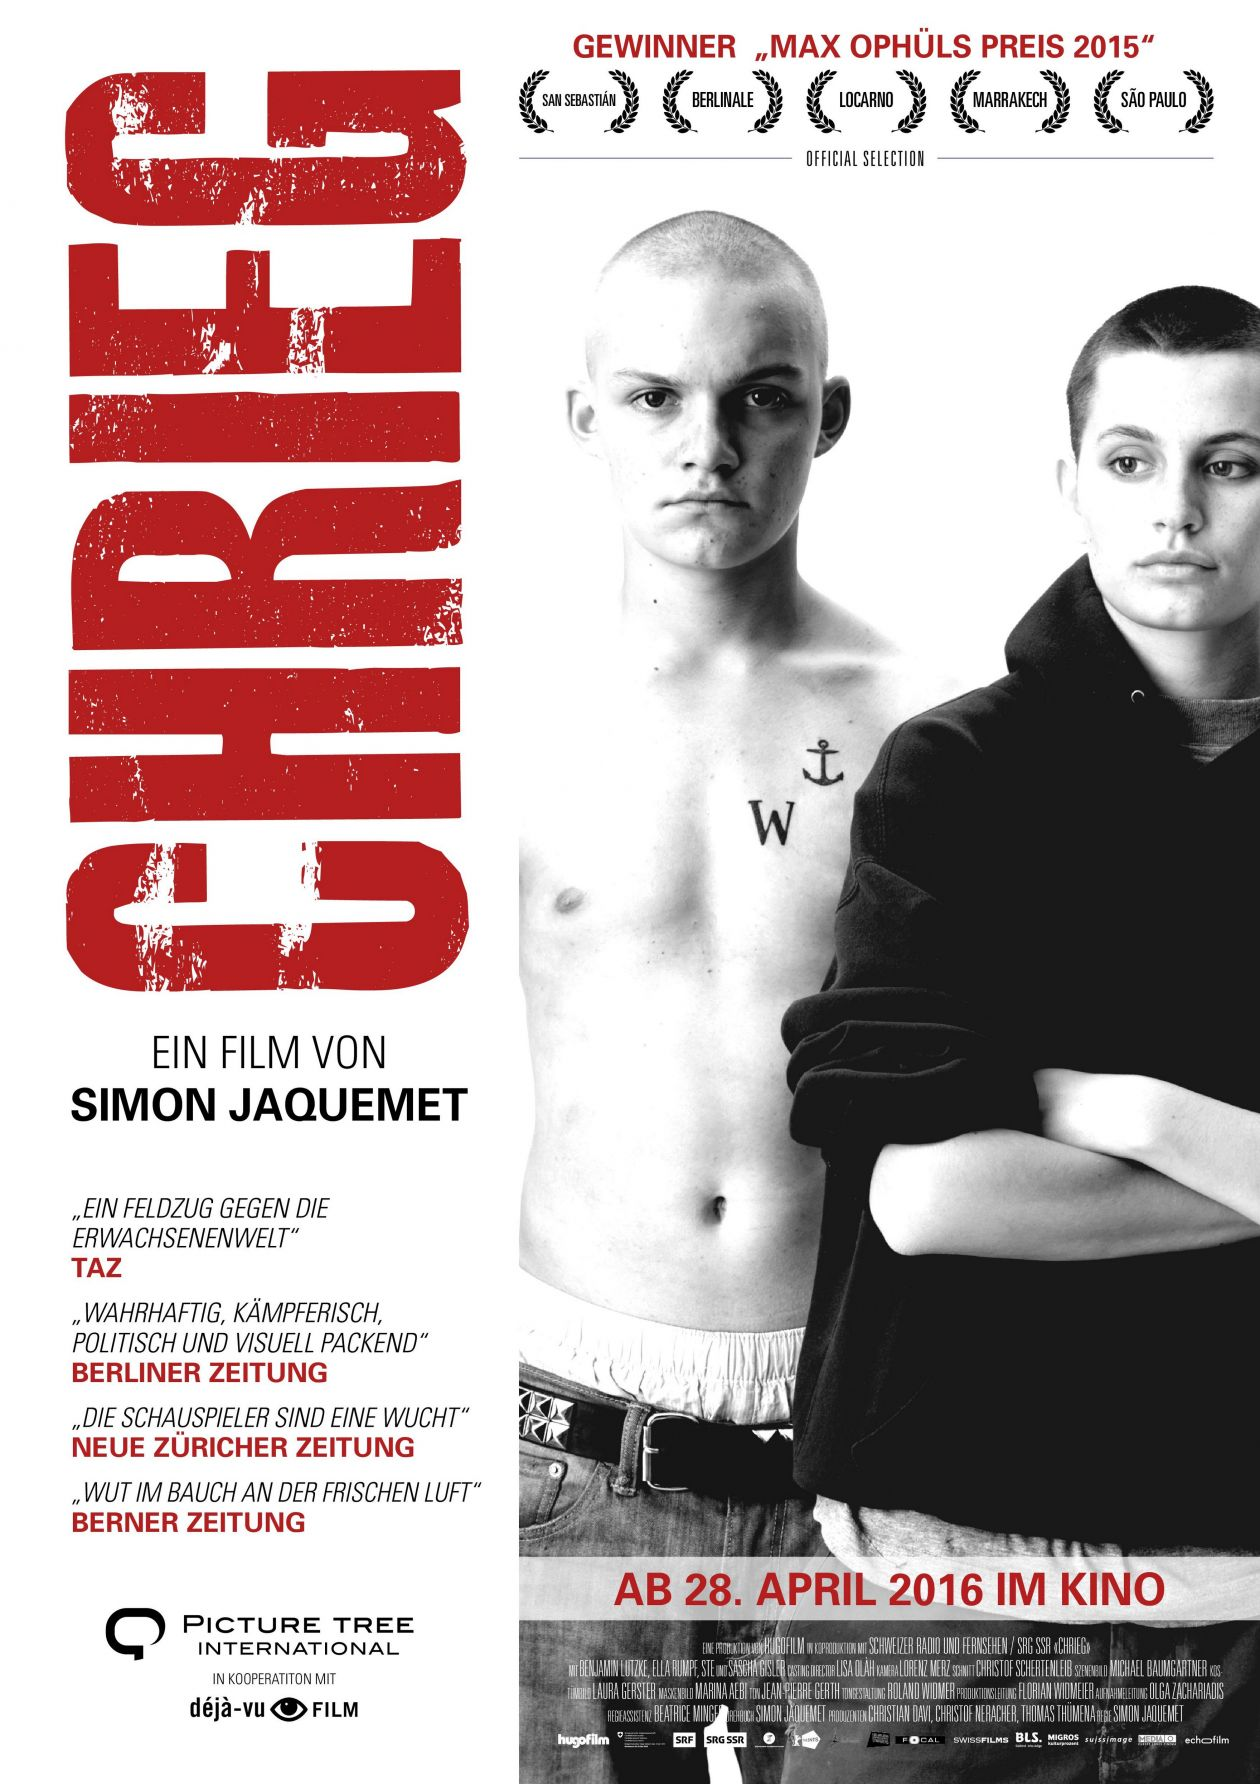 Ella Rumpf actress | Chrieg / War / Simon Jaquemet 2014 Movie Poster / Affiche film